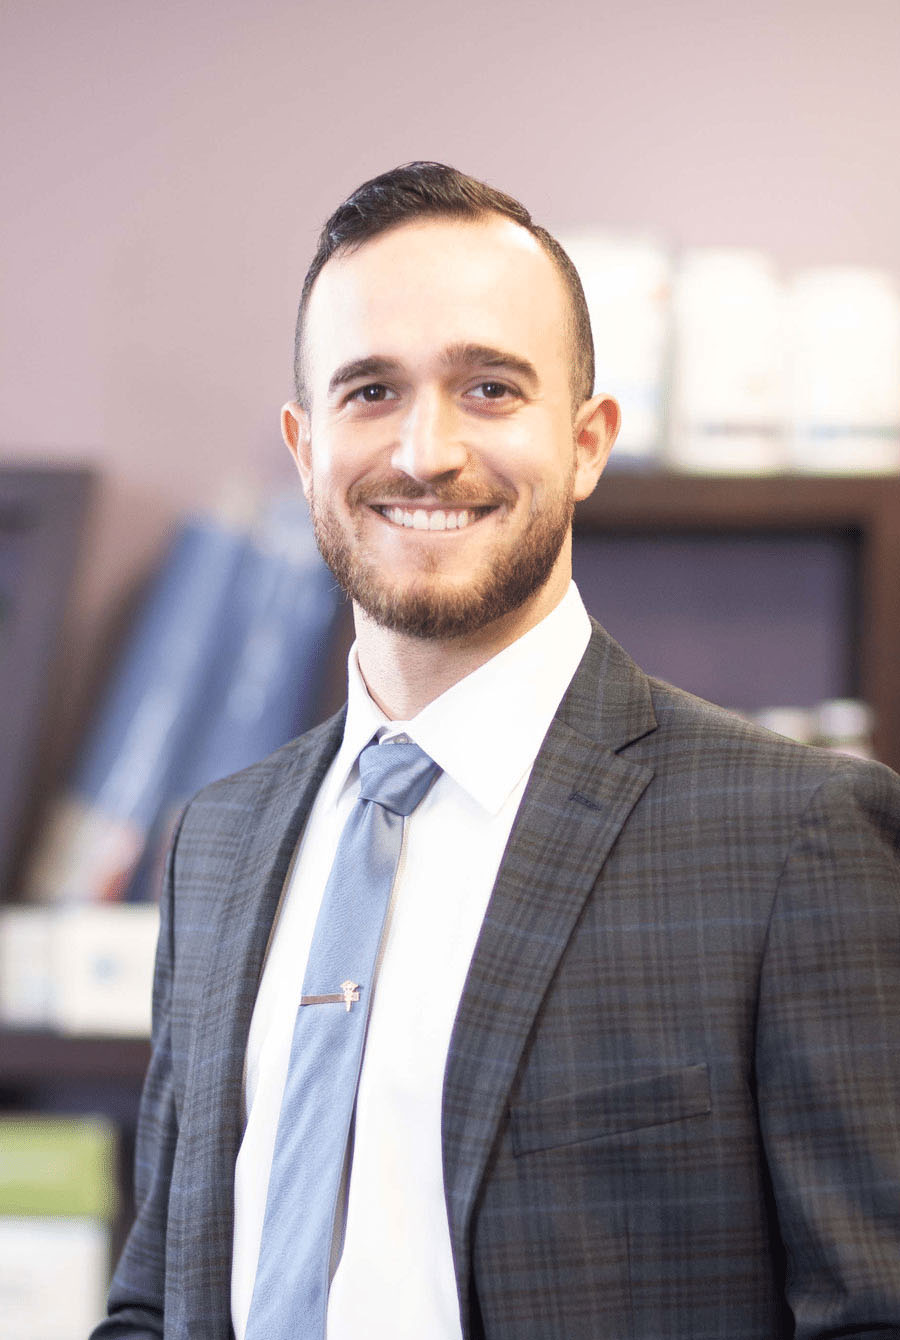 Dr. Nicholas Sclabassi at StayWell Chiropractic in Novi